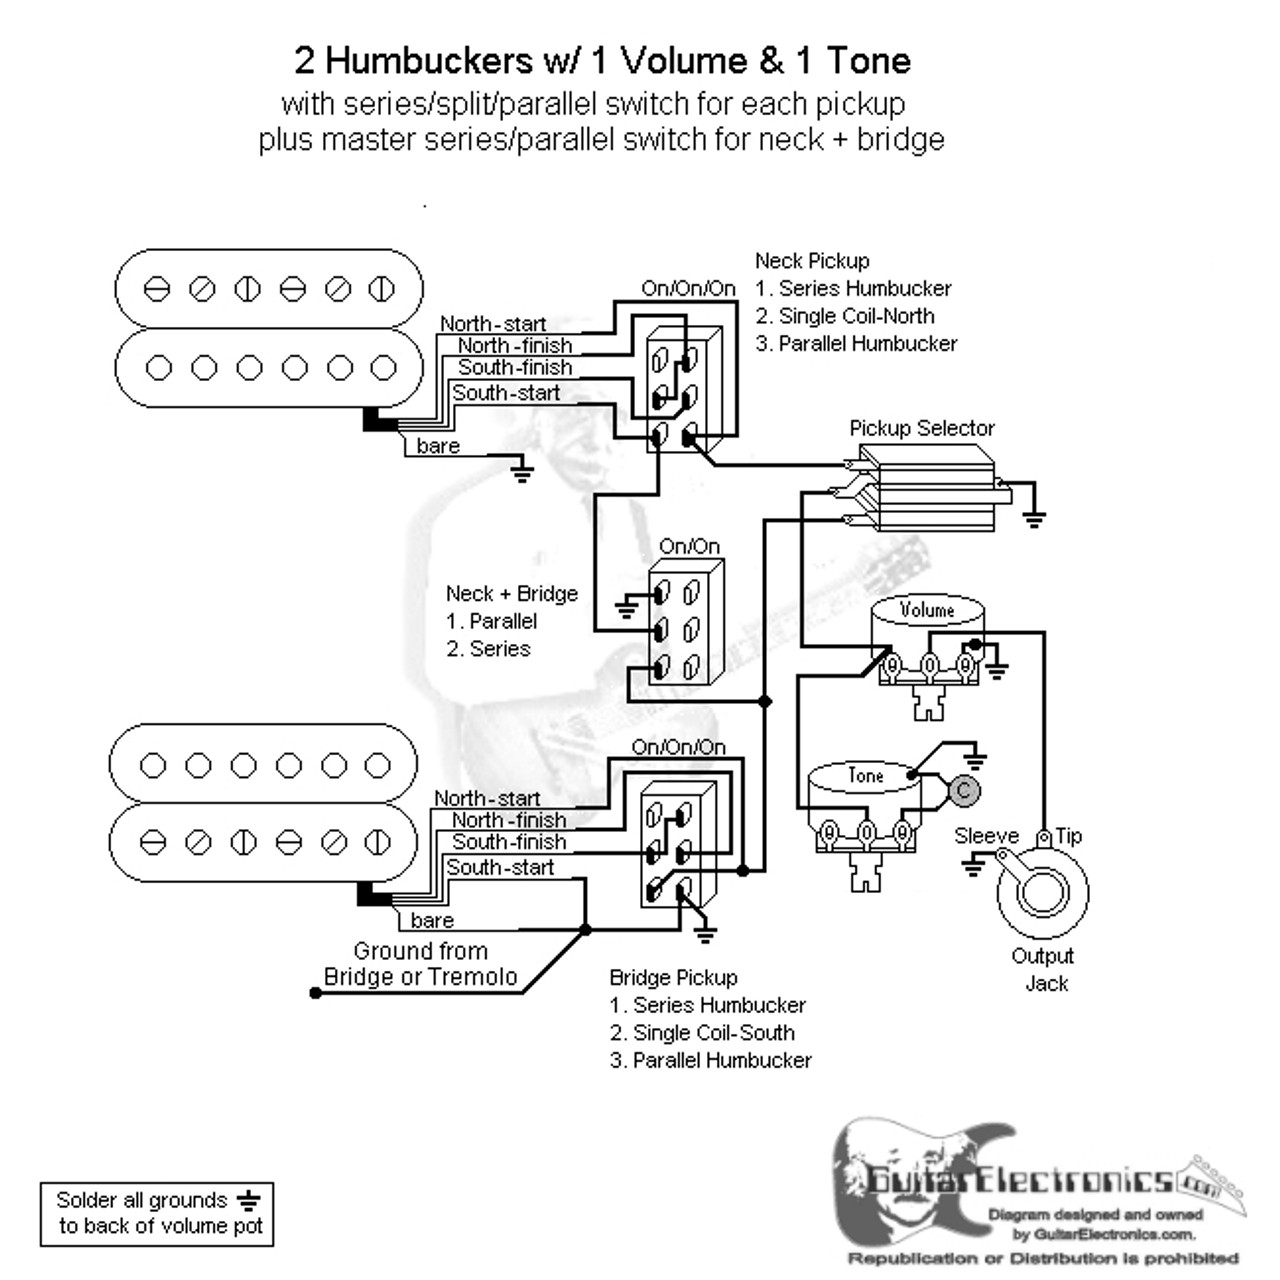 2 HBs/3-Way Toggle/1 Vol/1 Tone/Series-Split-Parallel ... on 3 wire switch schematic, 3-way wire colors, 3-way wiring fan with light, 3-way switch timer, 3-way wiring diagram multiple lights, 3-way switches for dummies, 3-way dimmer switch schematic, 3-way switch circuit variations, 3-way switch hook up, 3-way switch operation, 3-way switch safety, 3-way light schematic, 3-way switch diagrams, 3-way wiring two switches, 3-way switch installation, 3-way switch controls, 3-way switch two lights, 4-way light switch schematic, 3-way lamp wiring diagram,